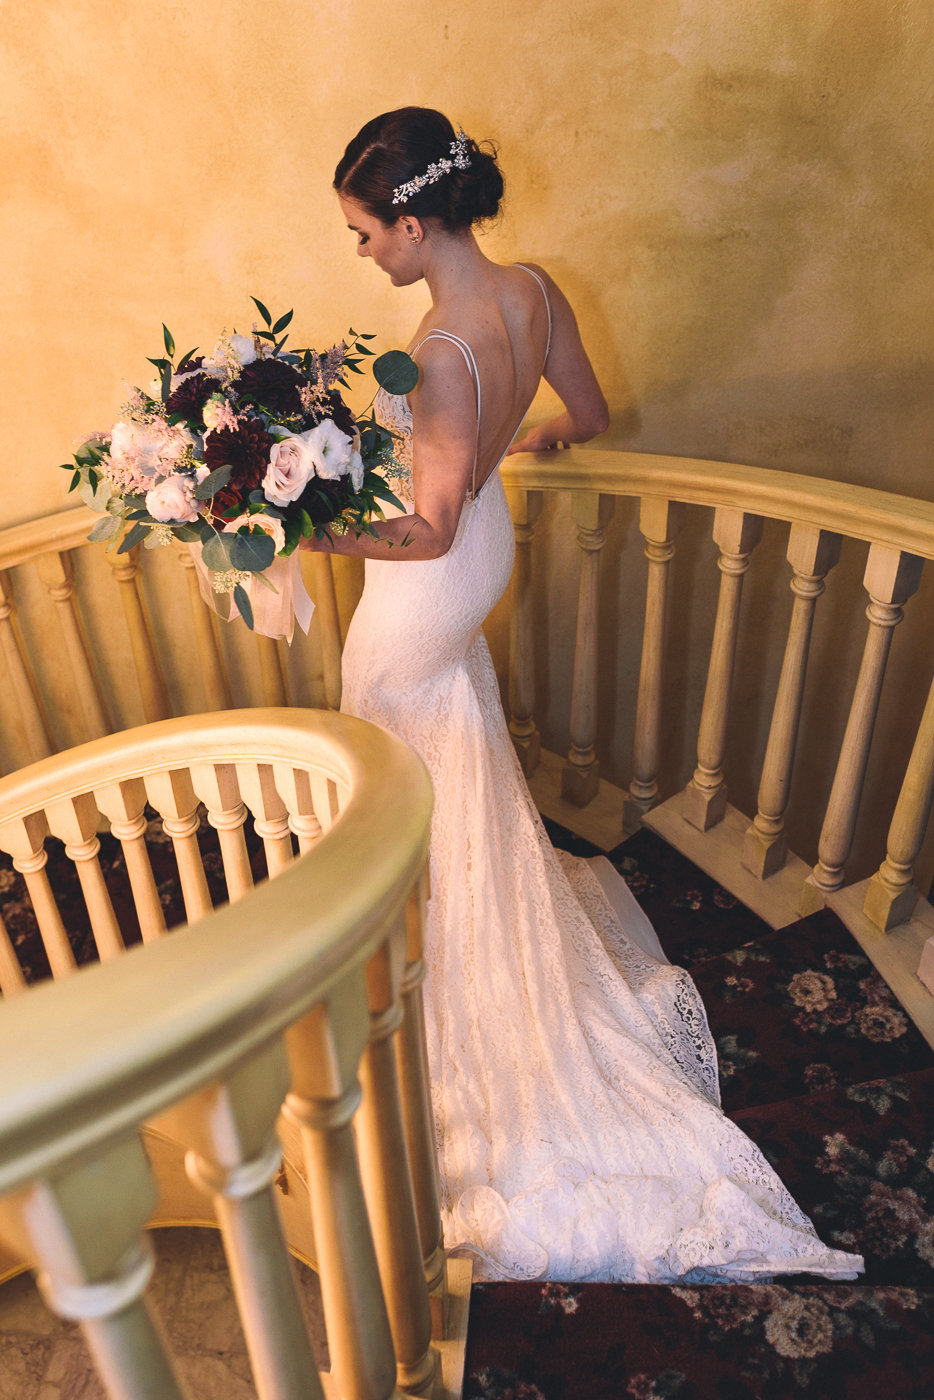 Elegant bride descending spiral staircase with bouquet